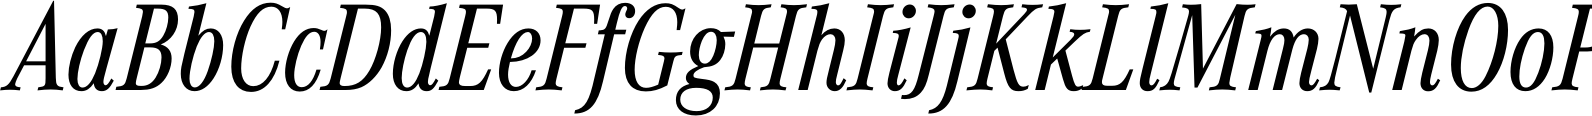 Corporate A Condensed Regular Italic